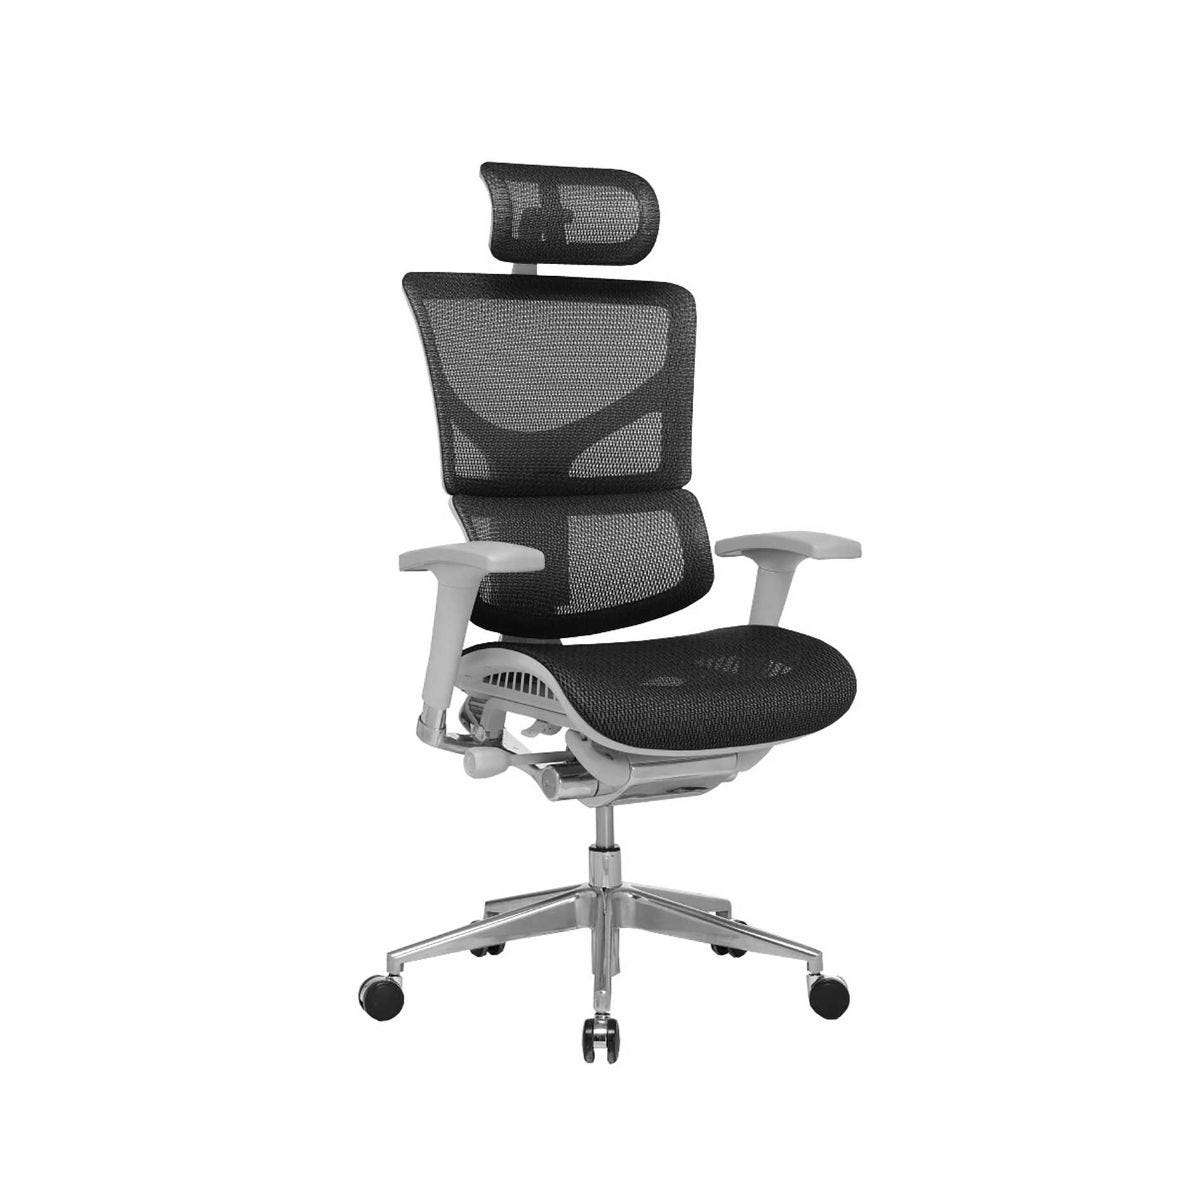 Ergonomic Mesh Office Chair With Headrest, Black